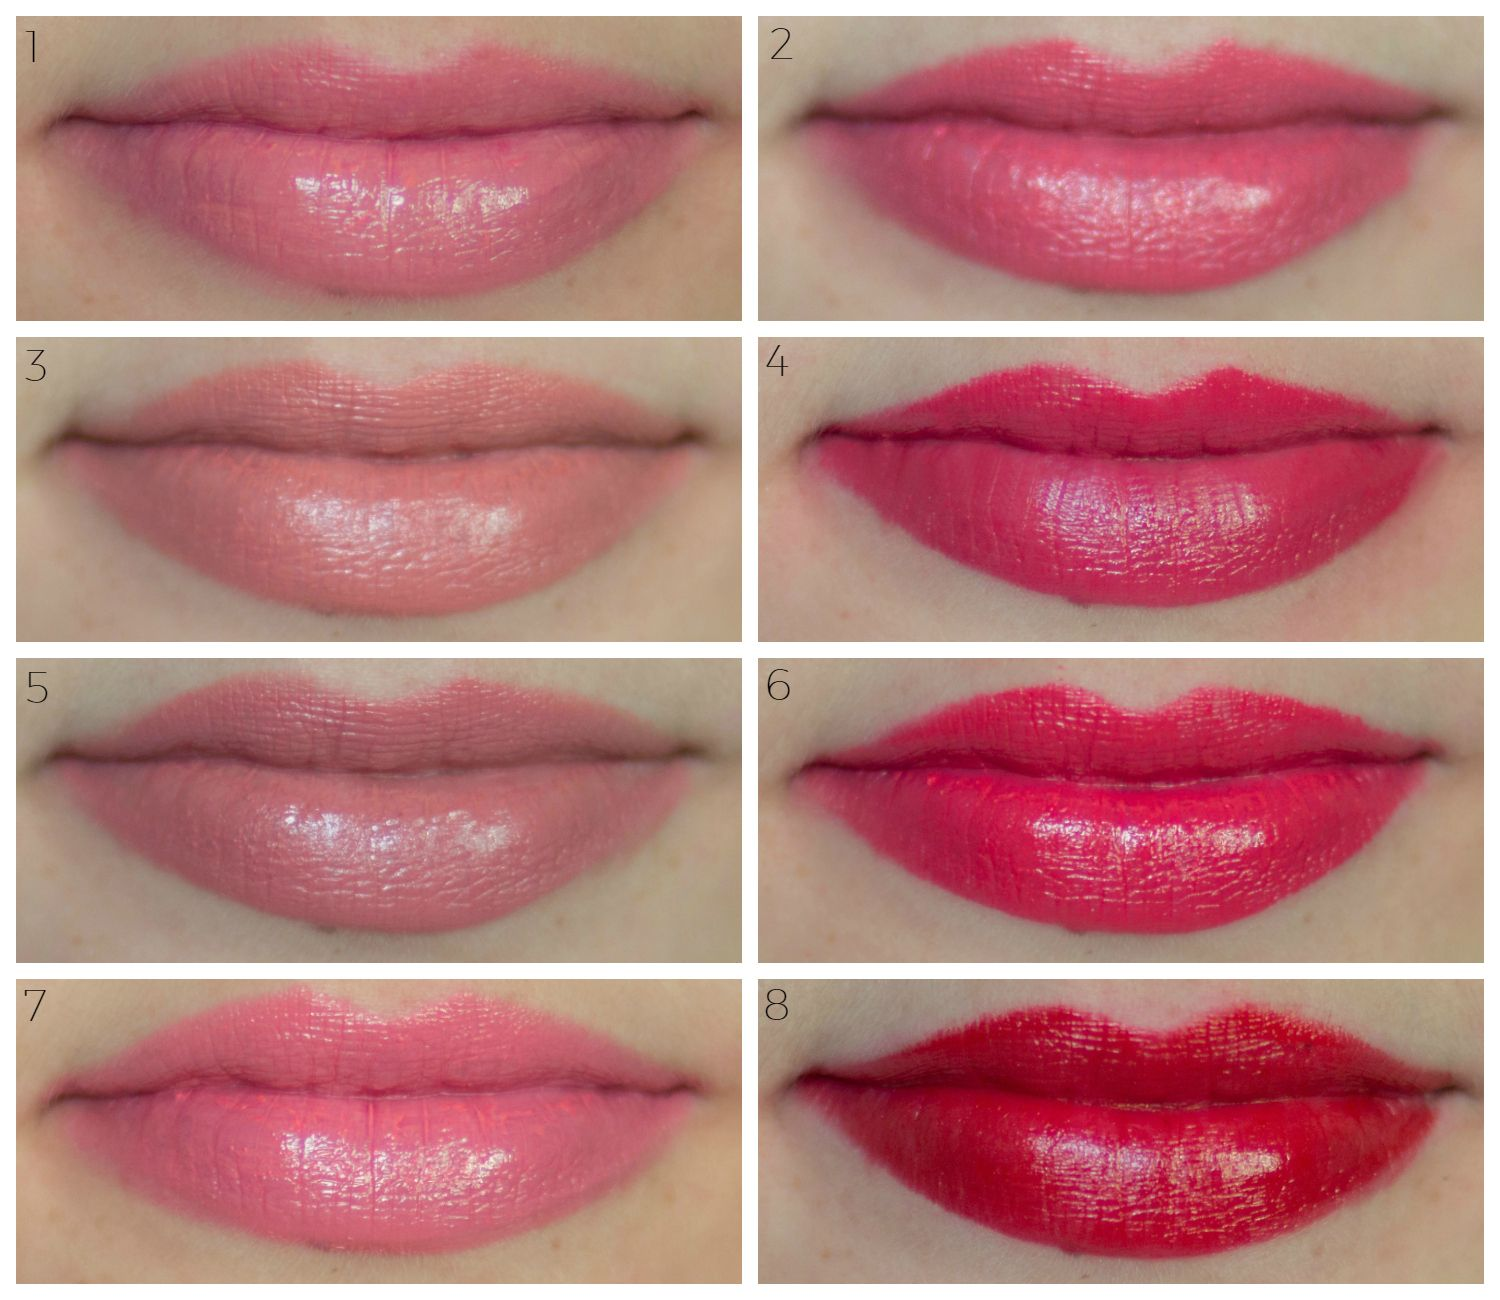 100 Pure Makeup Review + Swatches Natural lipstick